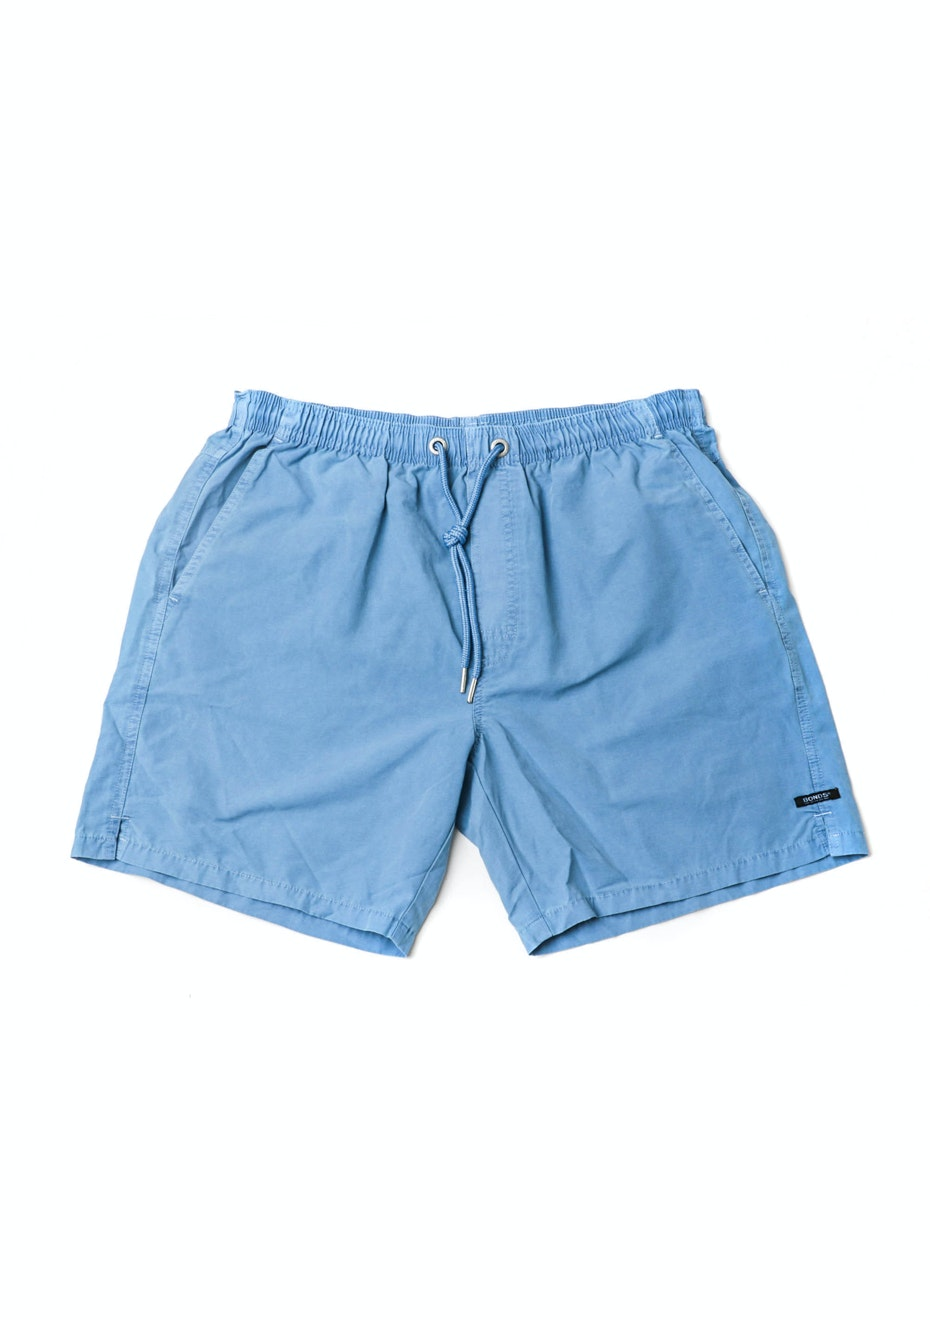 BONDS - Heat Wave Short - Vintage Denim